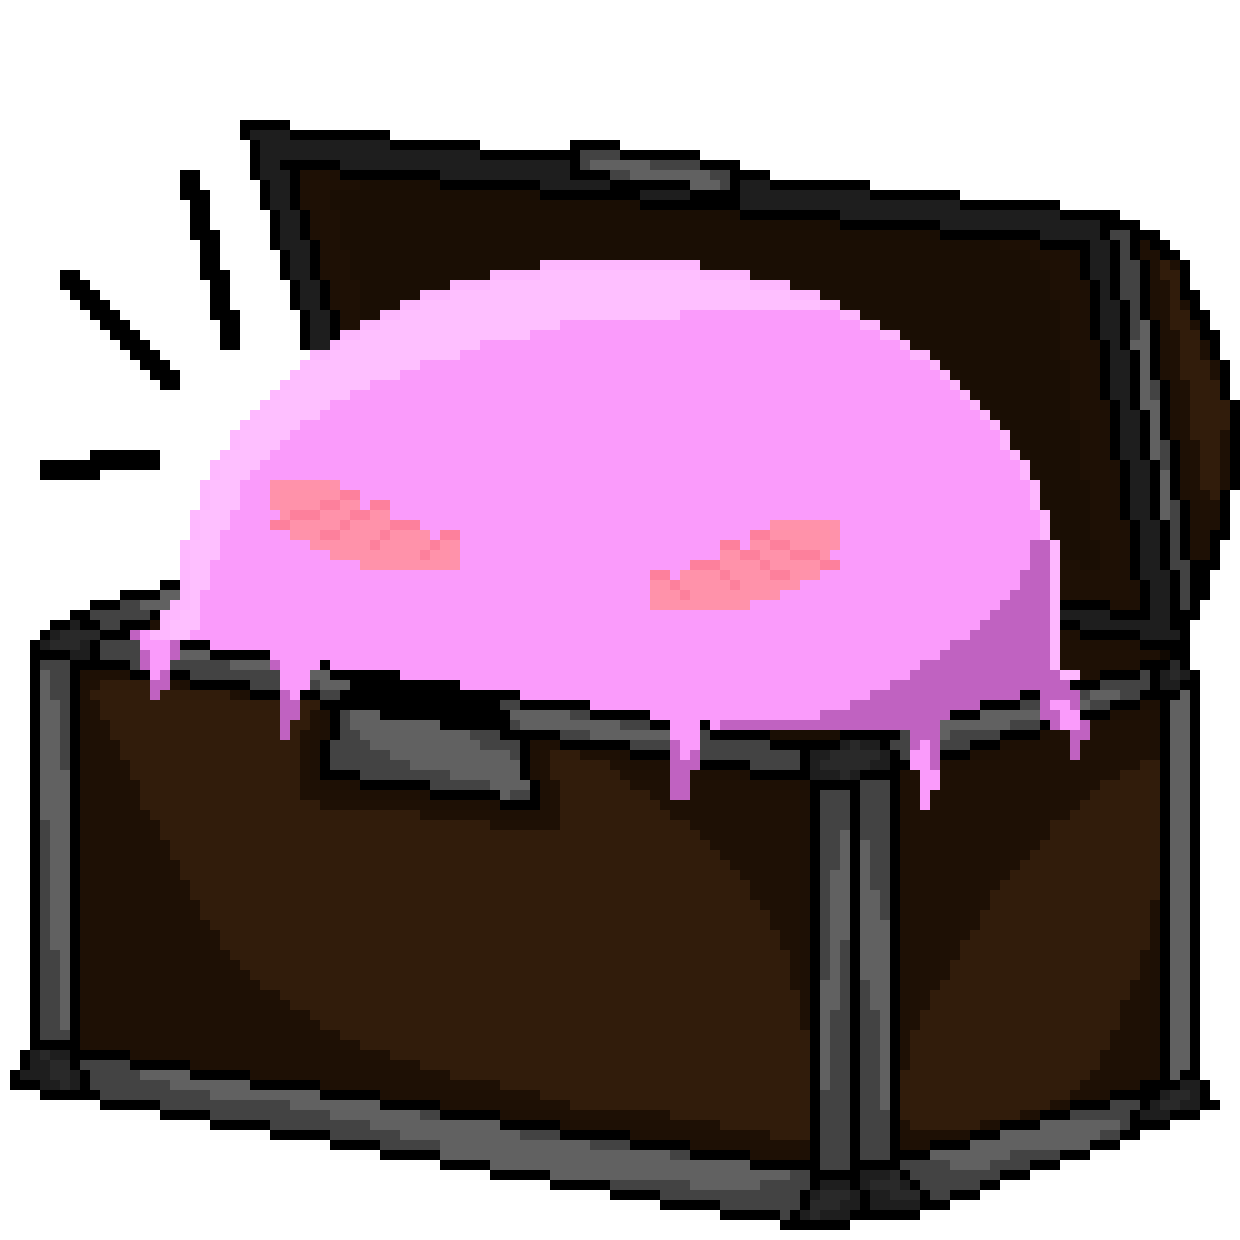 Clip down chest. Pixel art pink slime